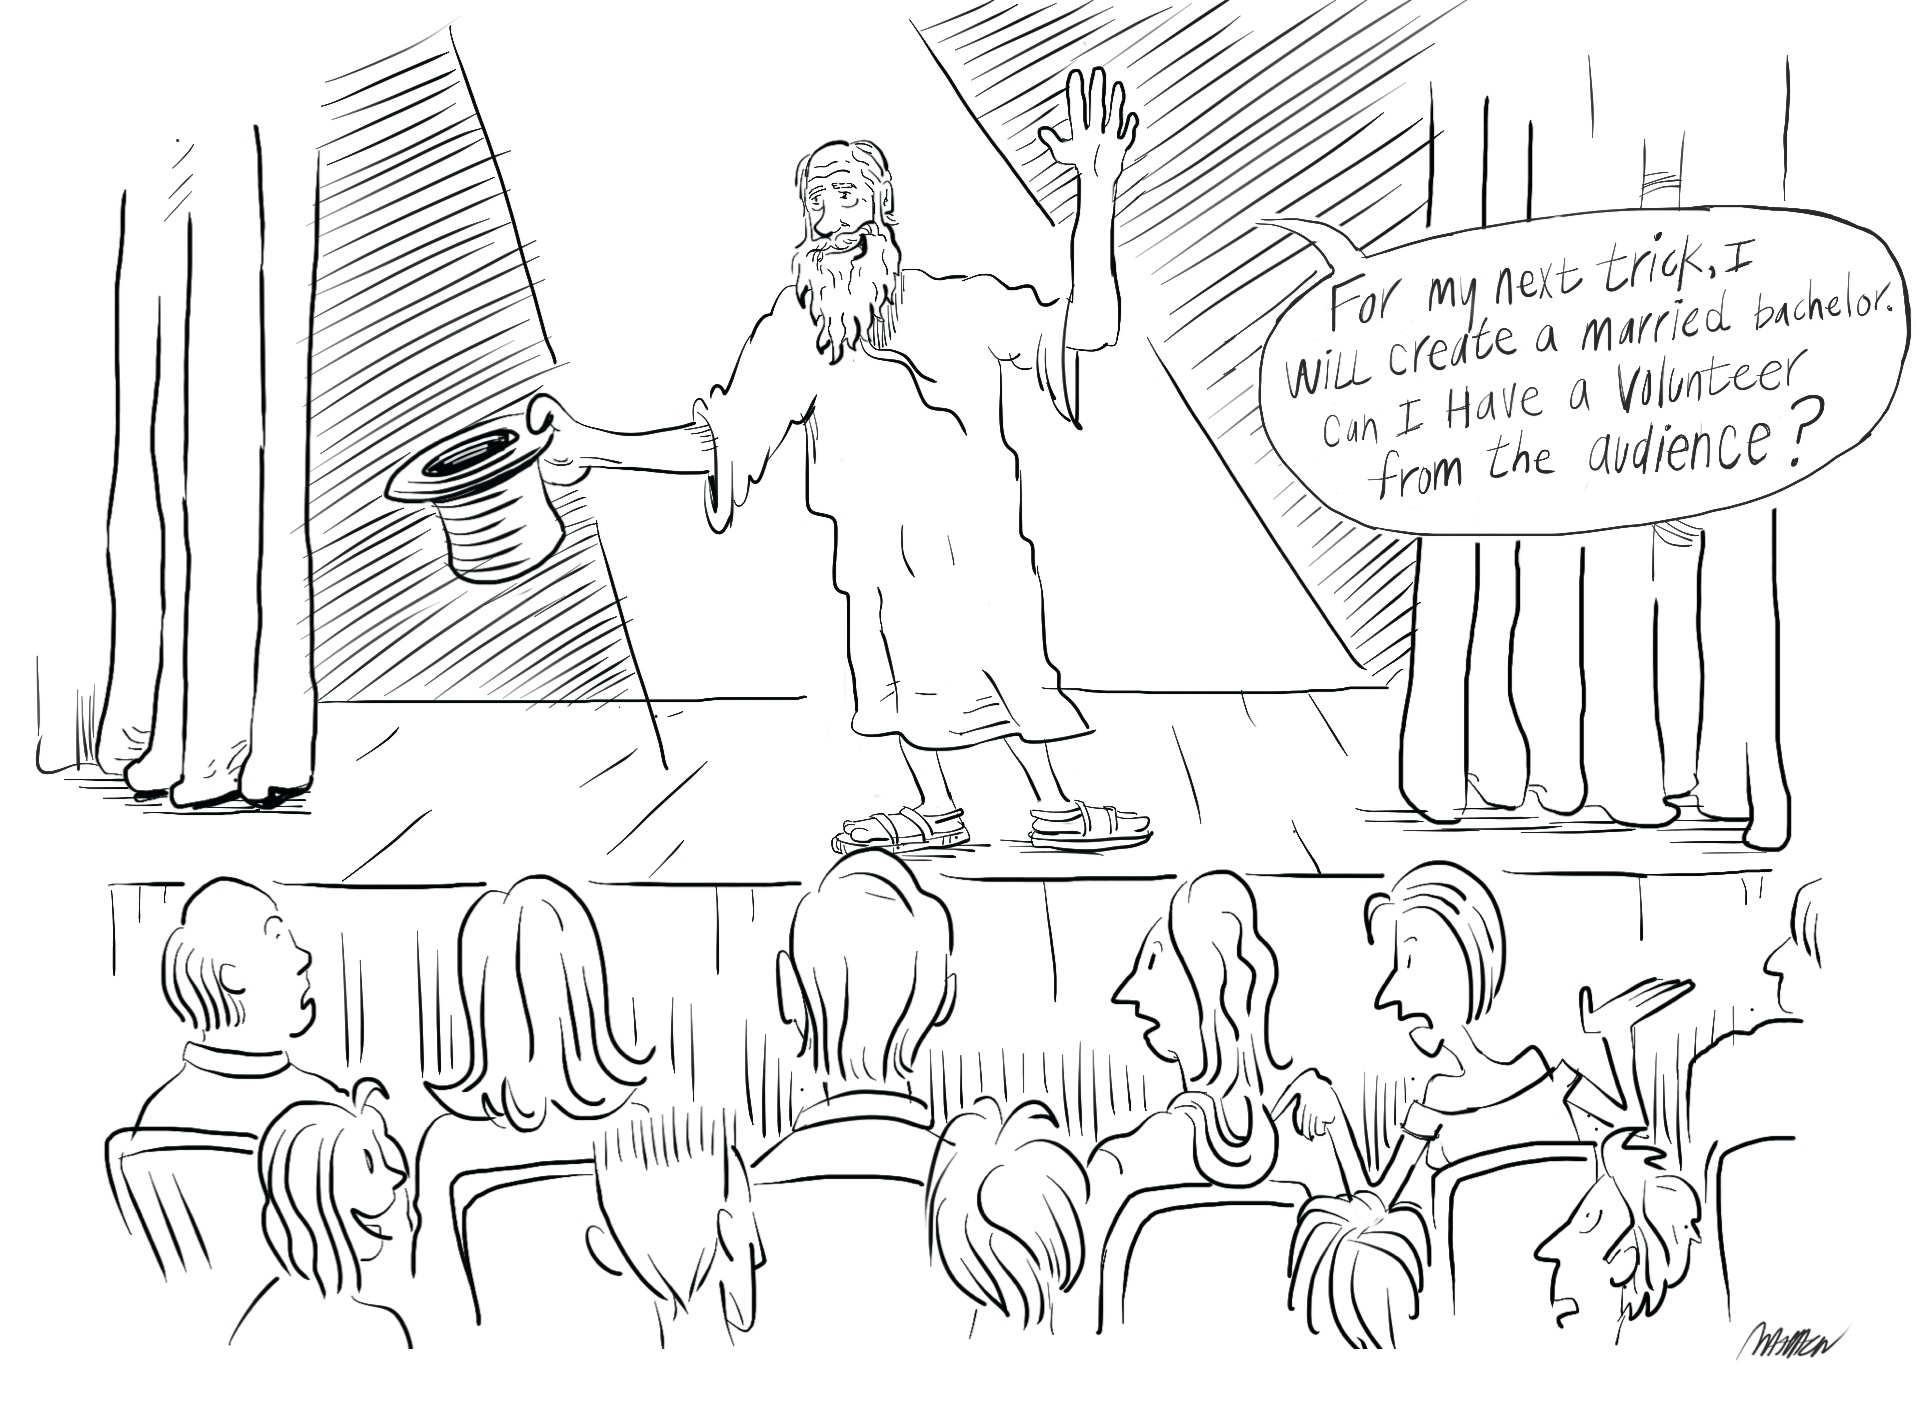 bad magician on stage asking for a volunteer